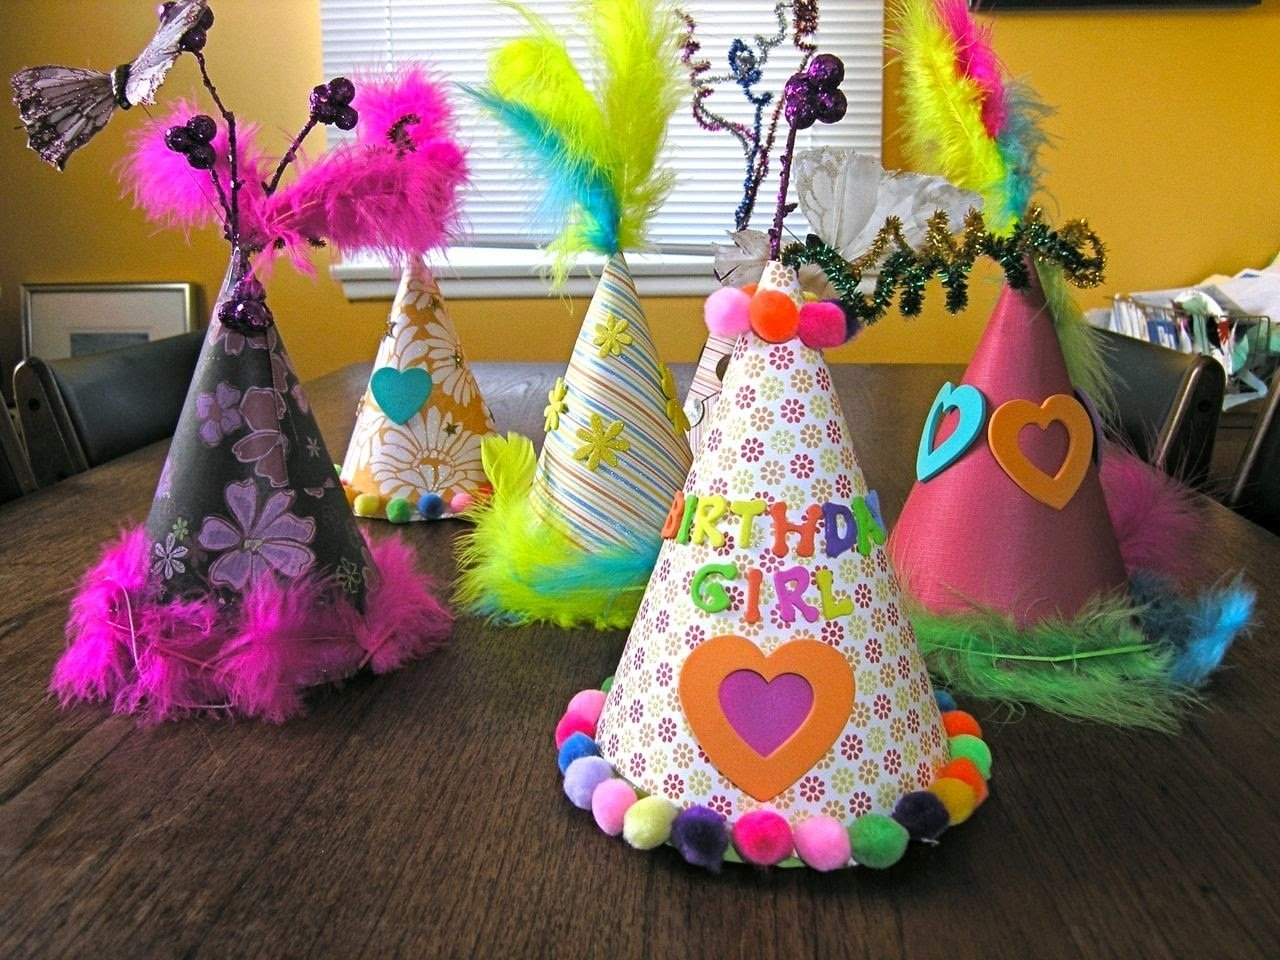 craft ideas for birthday parties - craftshady - craftshady